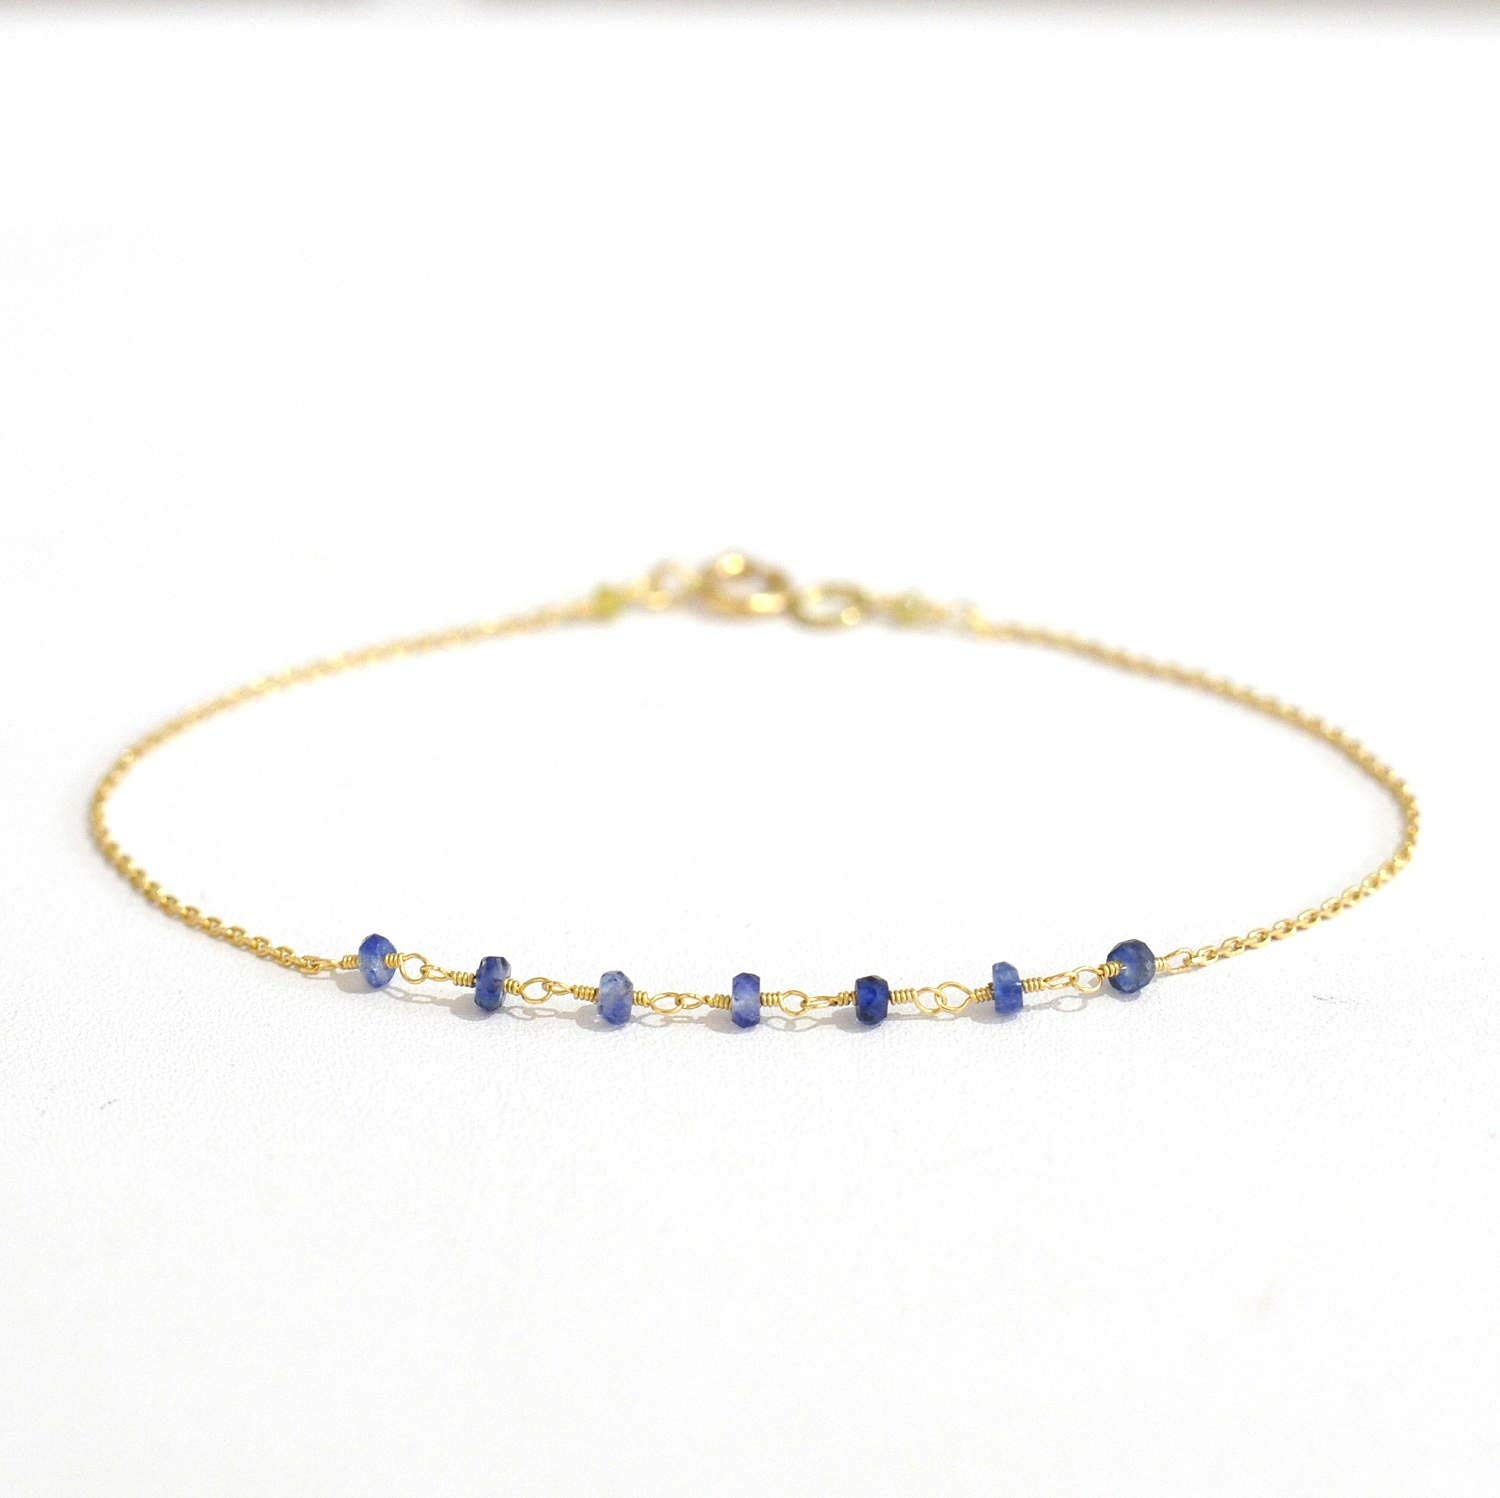 18K Gold. Blue Sapphire & Yellow Diamond Bracelet in 18KYG, Sapphire Delicate Gold Bracelet, April Birthstone Jewelry, Gift for Her,